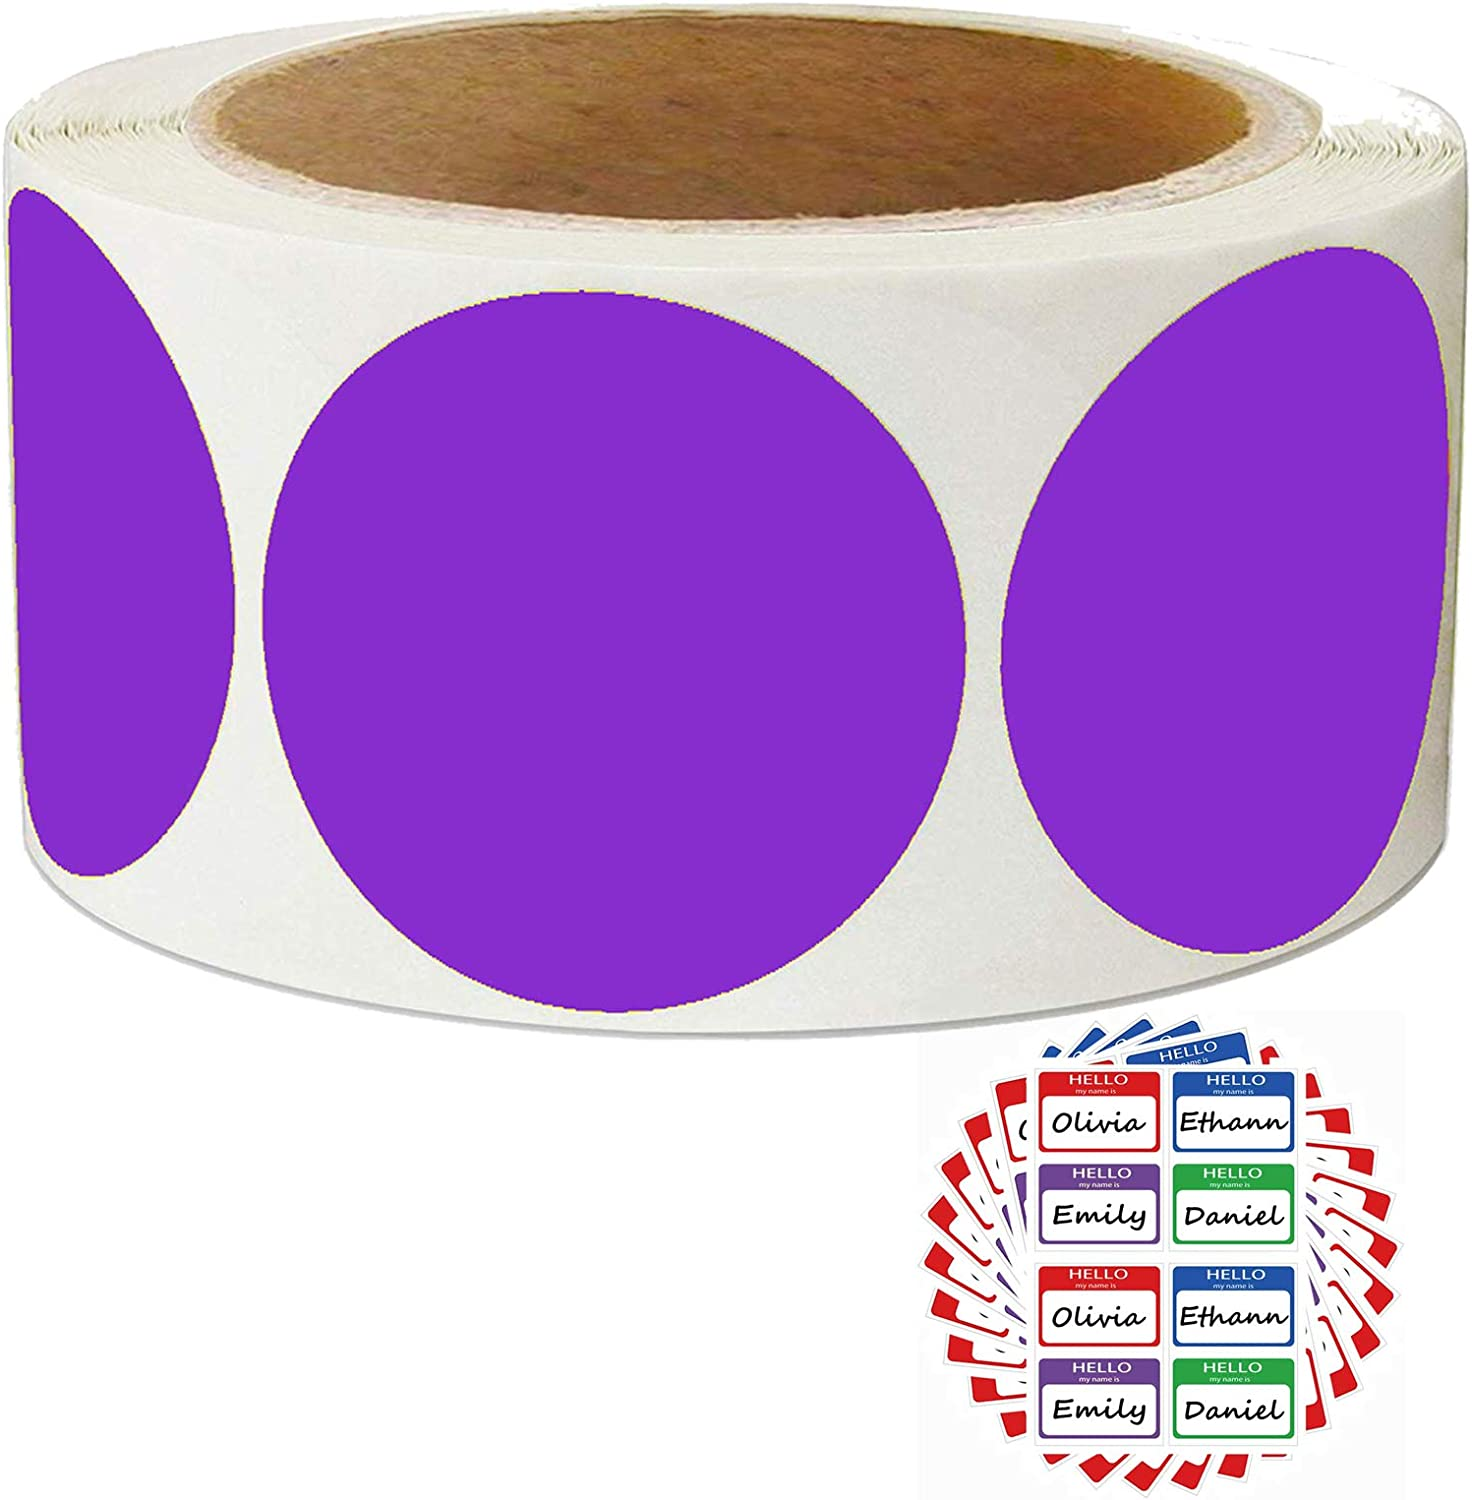 Fluorescent Purple Labels 2 inch Round Color Coding Dot Stickers - Permanent Color-Code Dot Labels 500 Adhesive Inventory Organizing Labels for Moving/Storage/Organizing/Color Coding/Arts